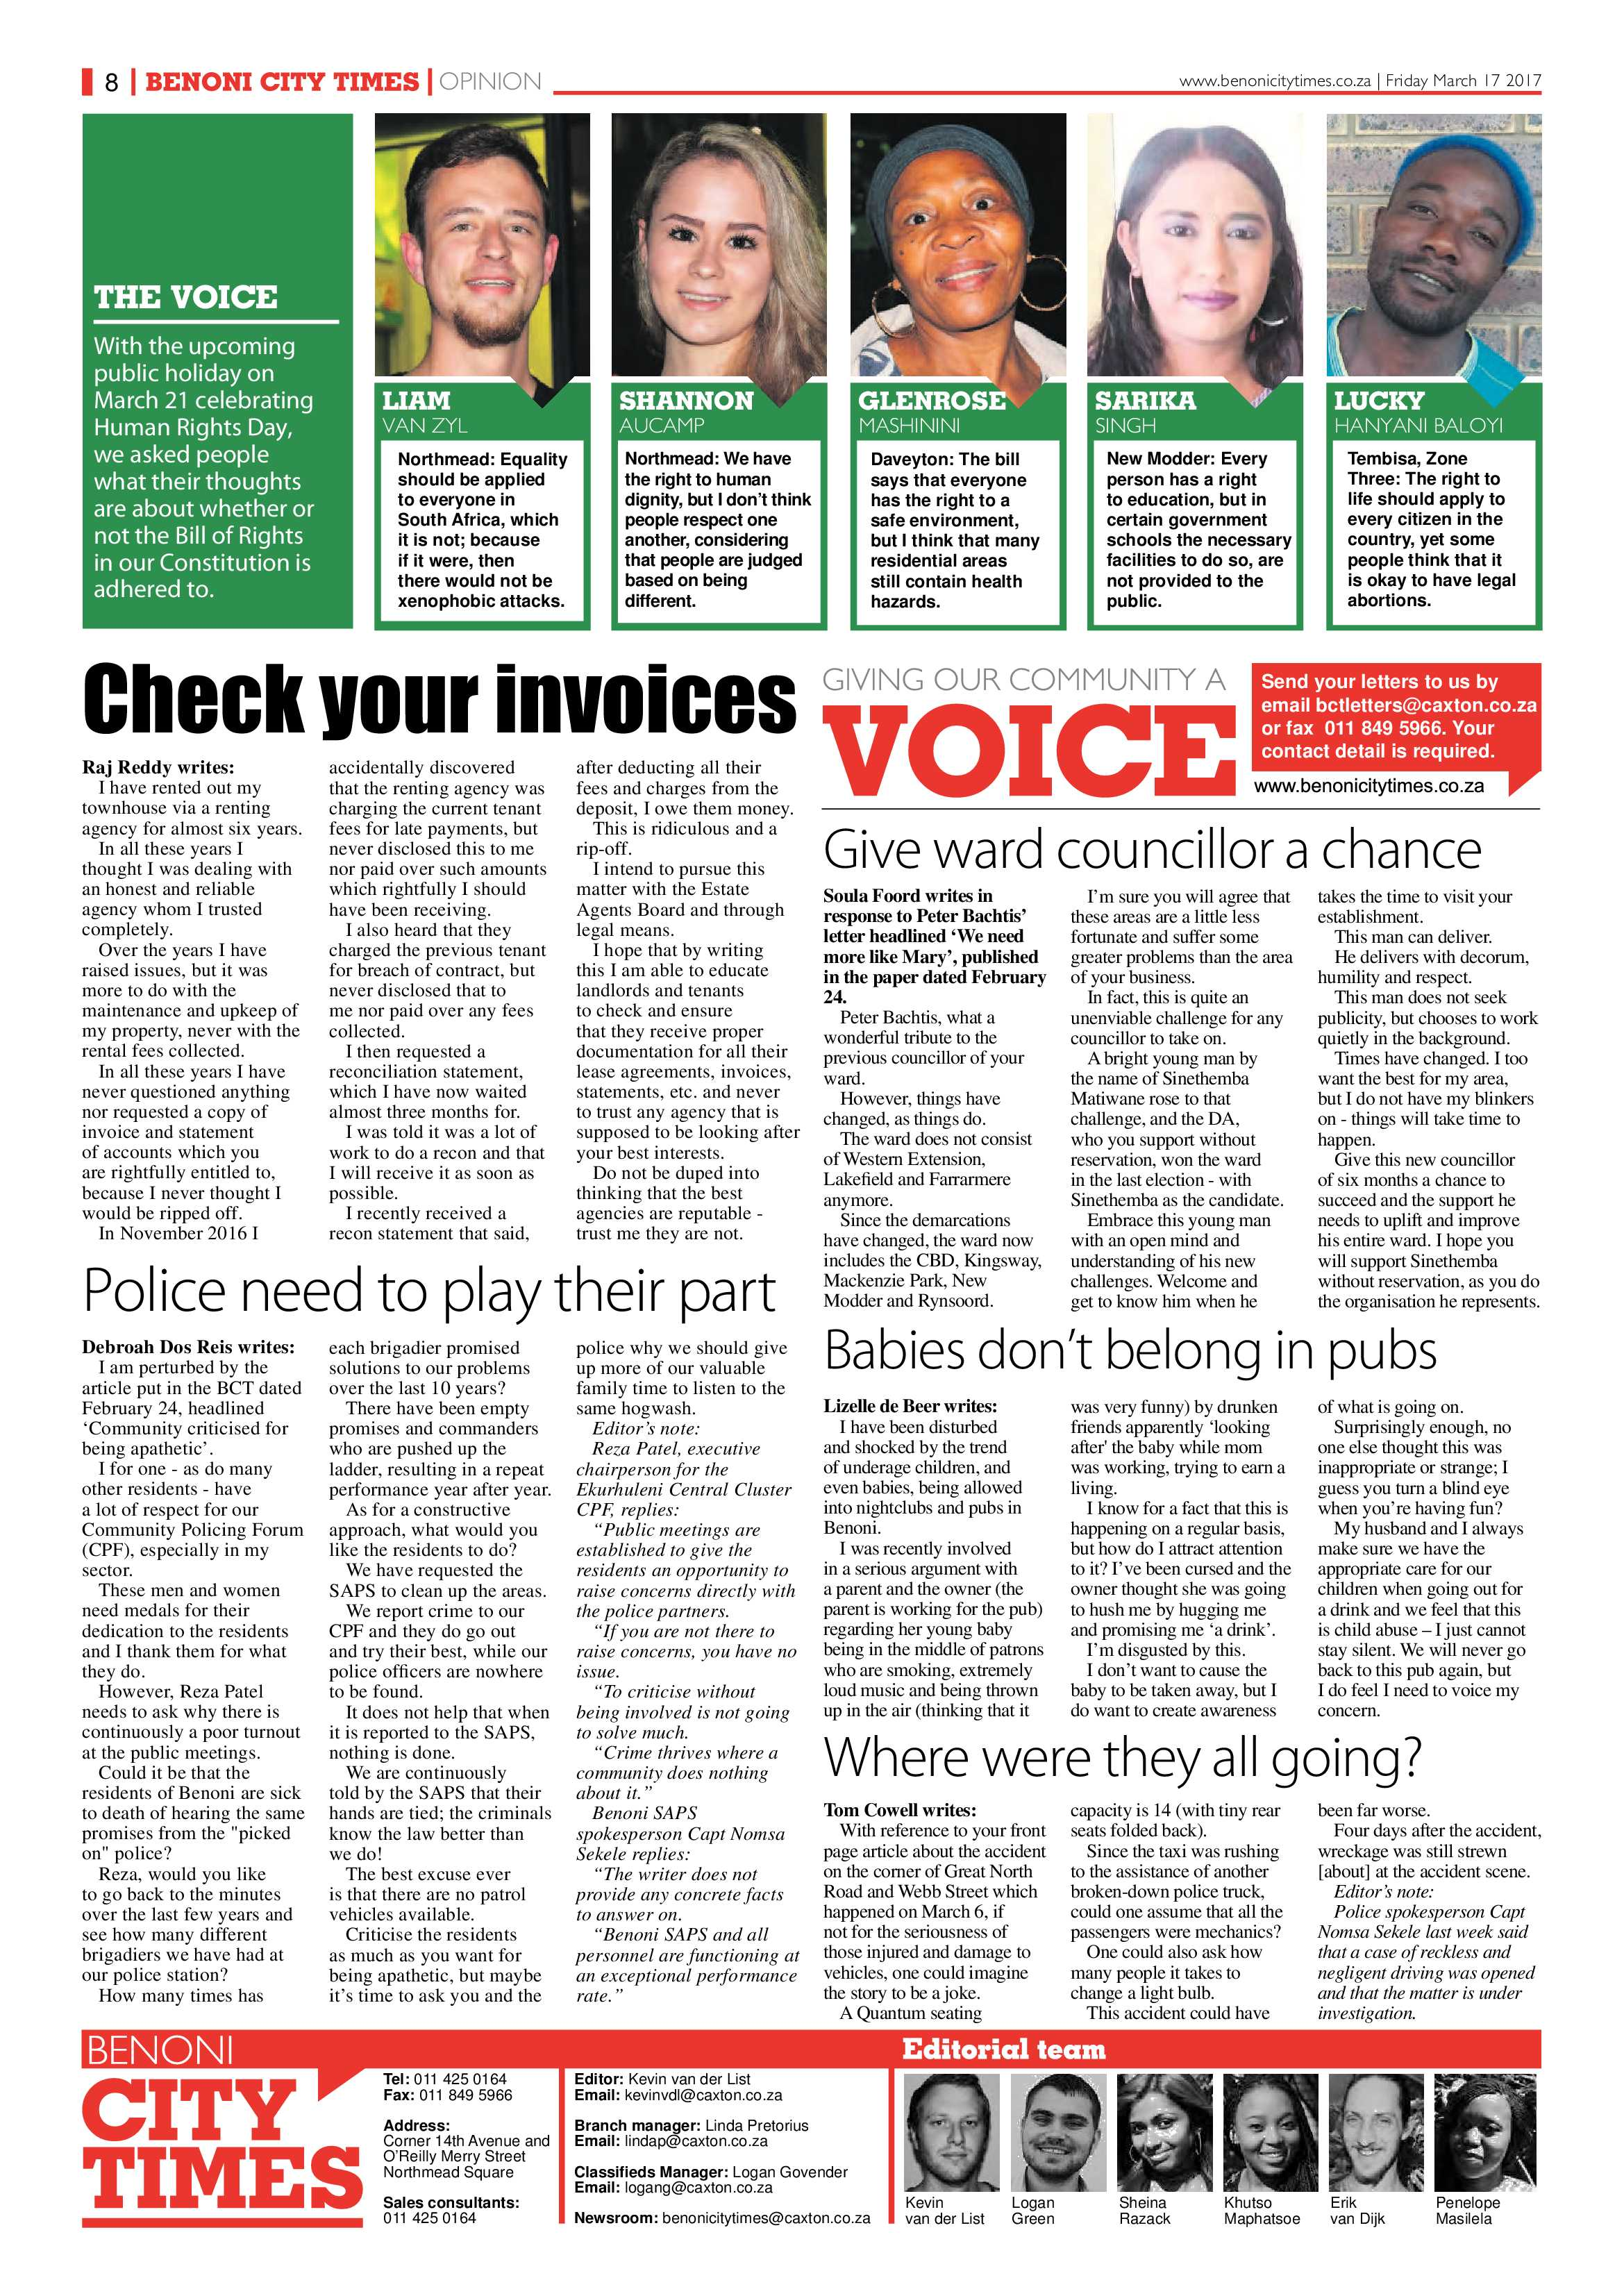 benoni-city-times-16-march-2017-epapers-page-8